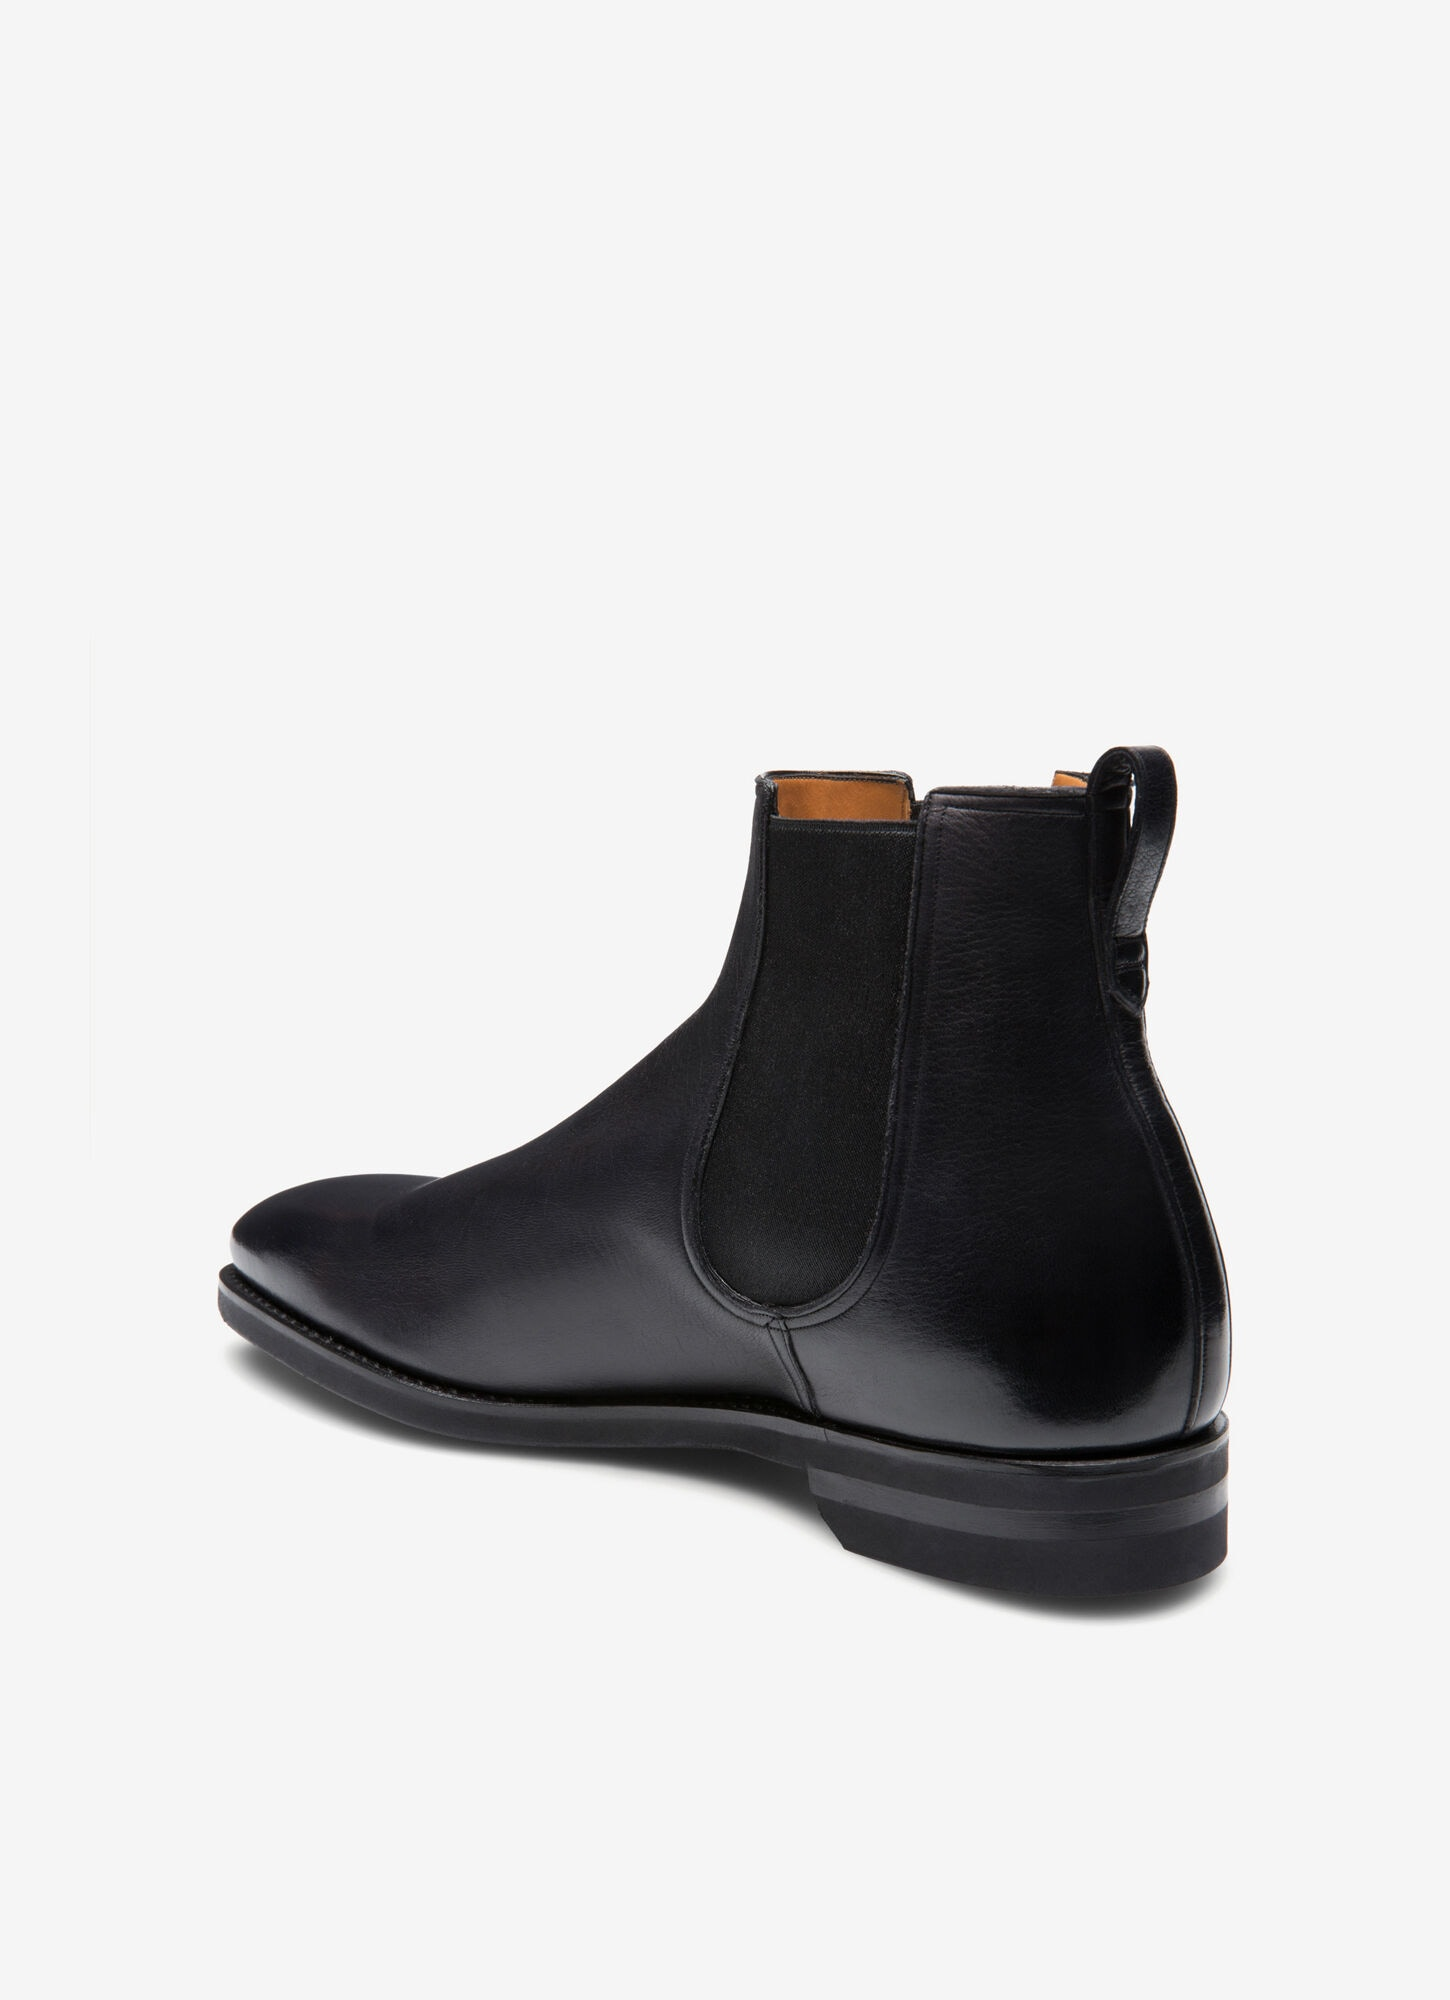 SCAVONE | Men's Boots | Bally Shoes